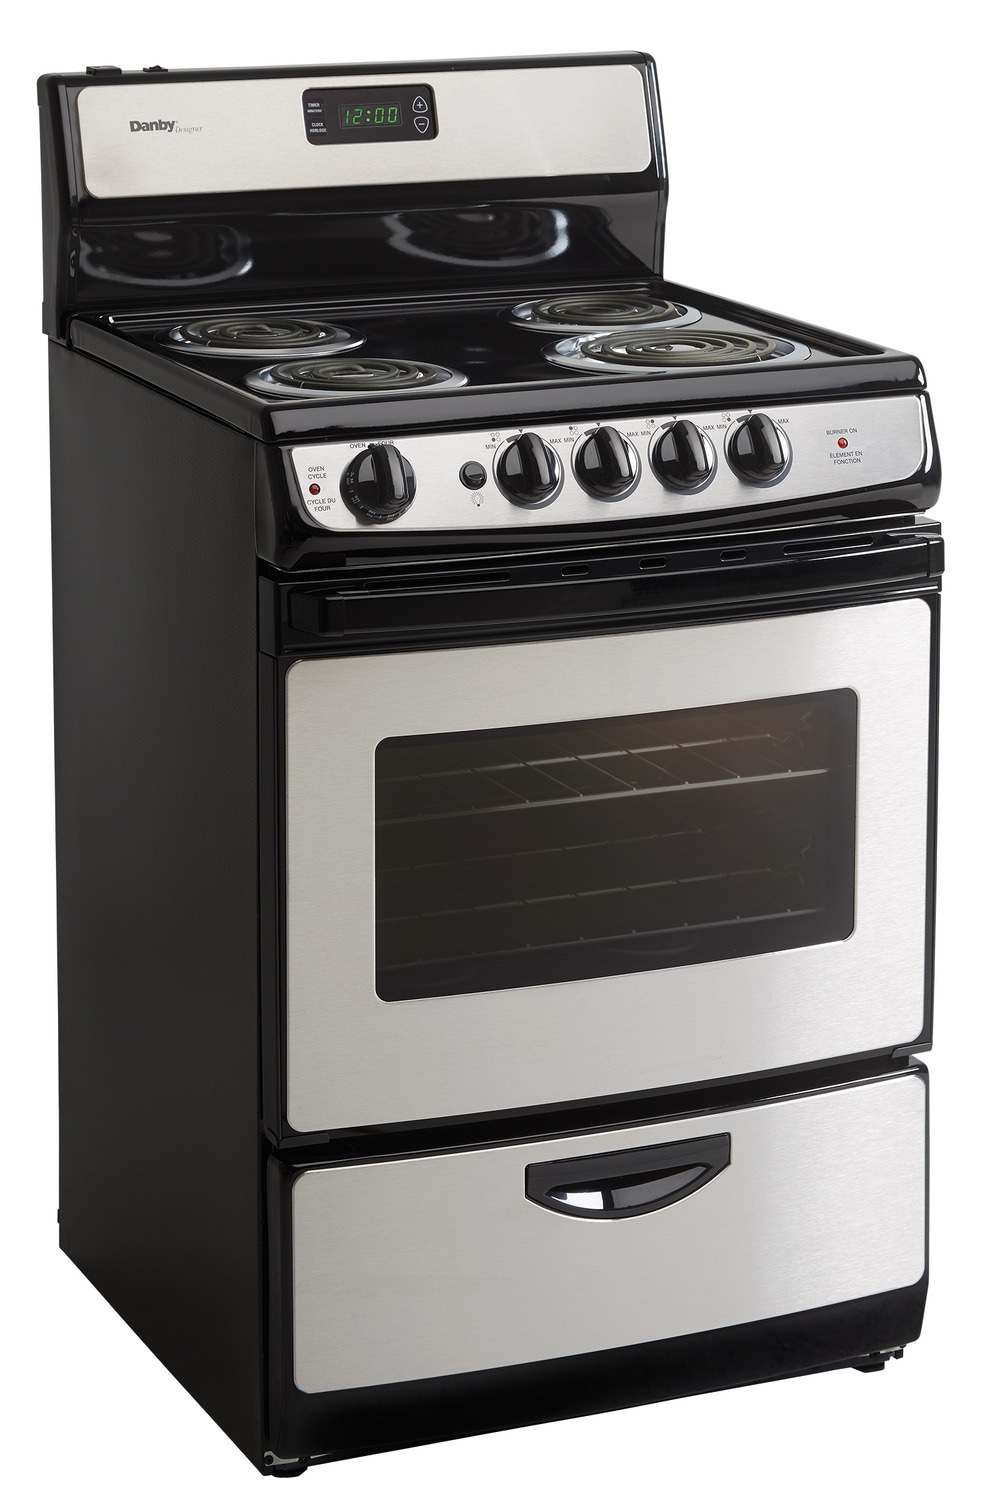 Cooking Products - Danby Stainless Steel Freestanding Electric Range (3 Cu. Ft.) - DER243BSSC